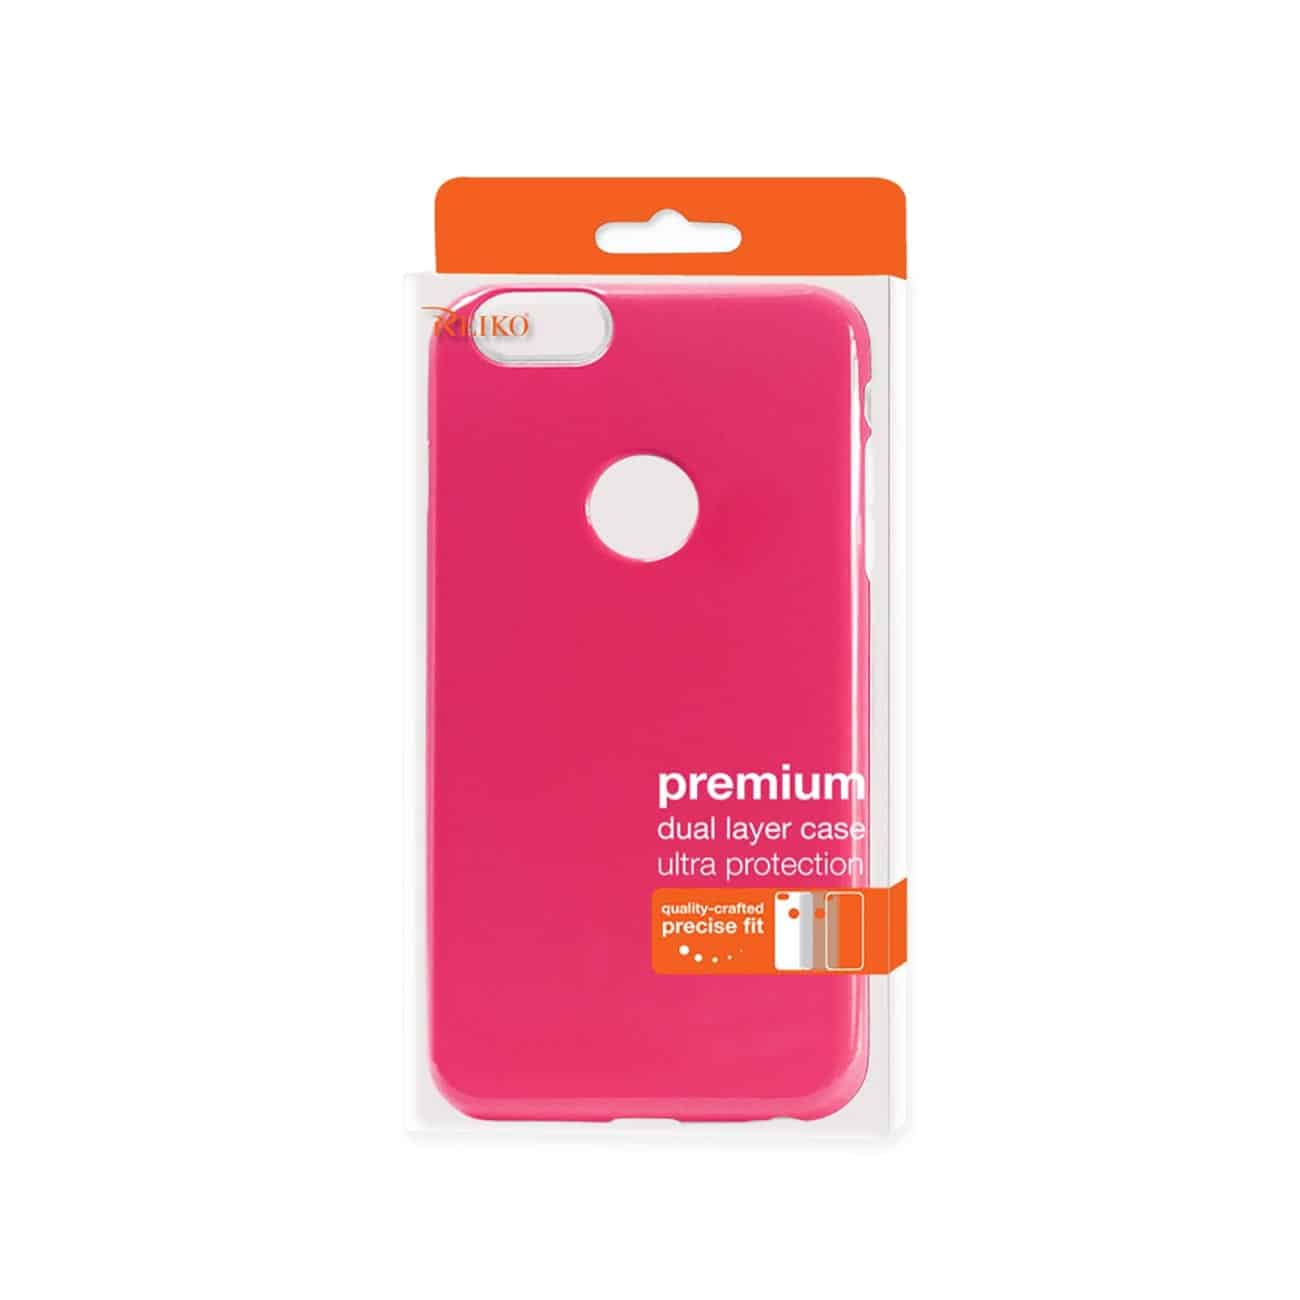 IPHONE 6 PLUS SLIM ARMOR CANDY SHIELD CASE IN PINK